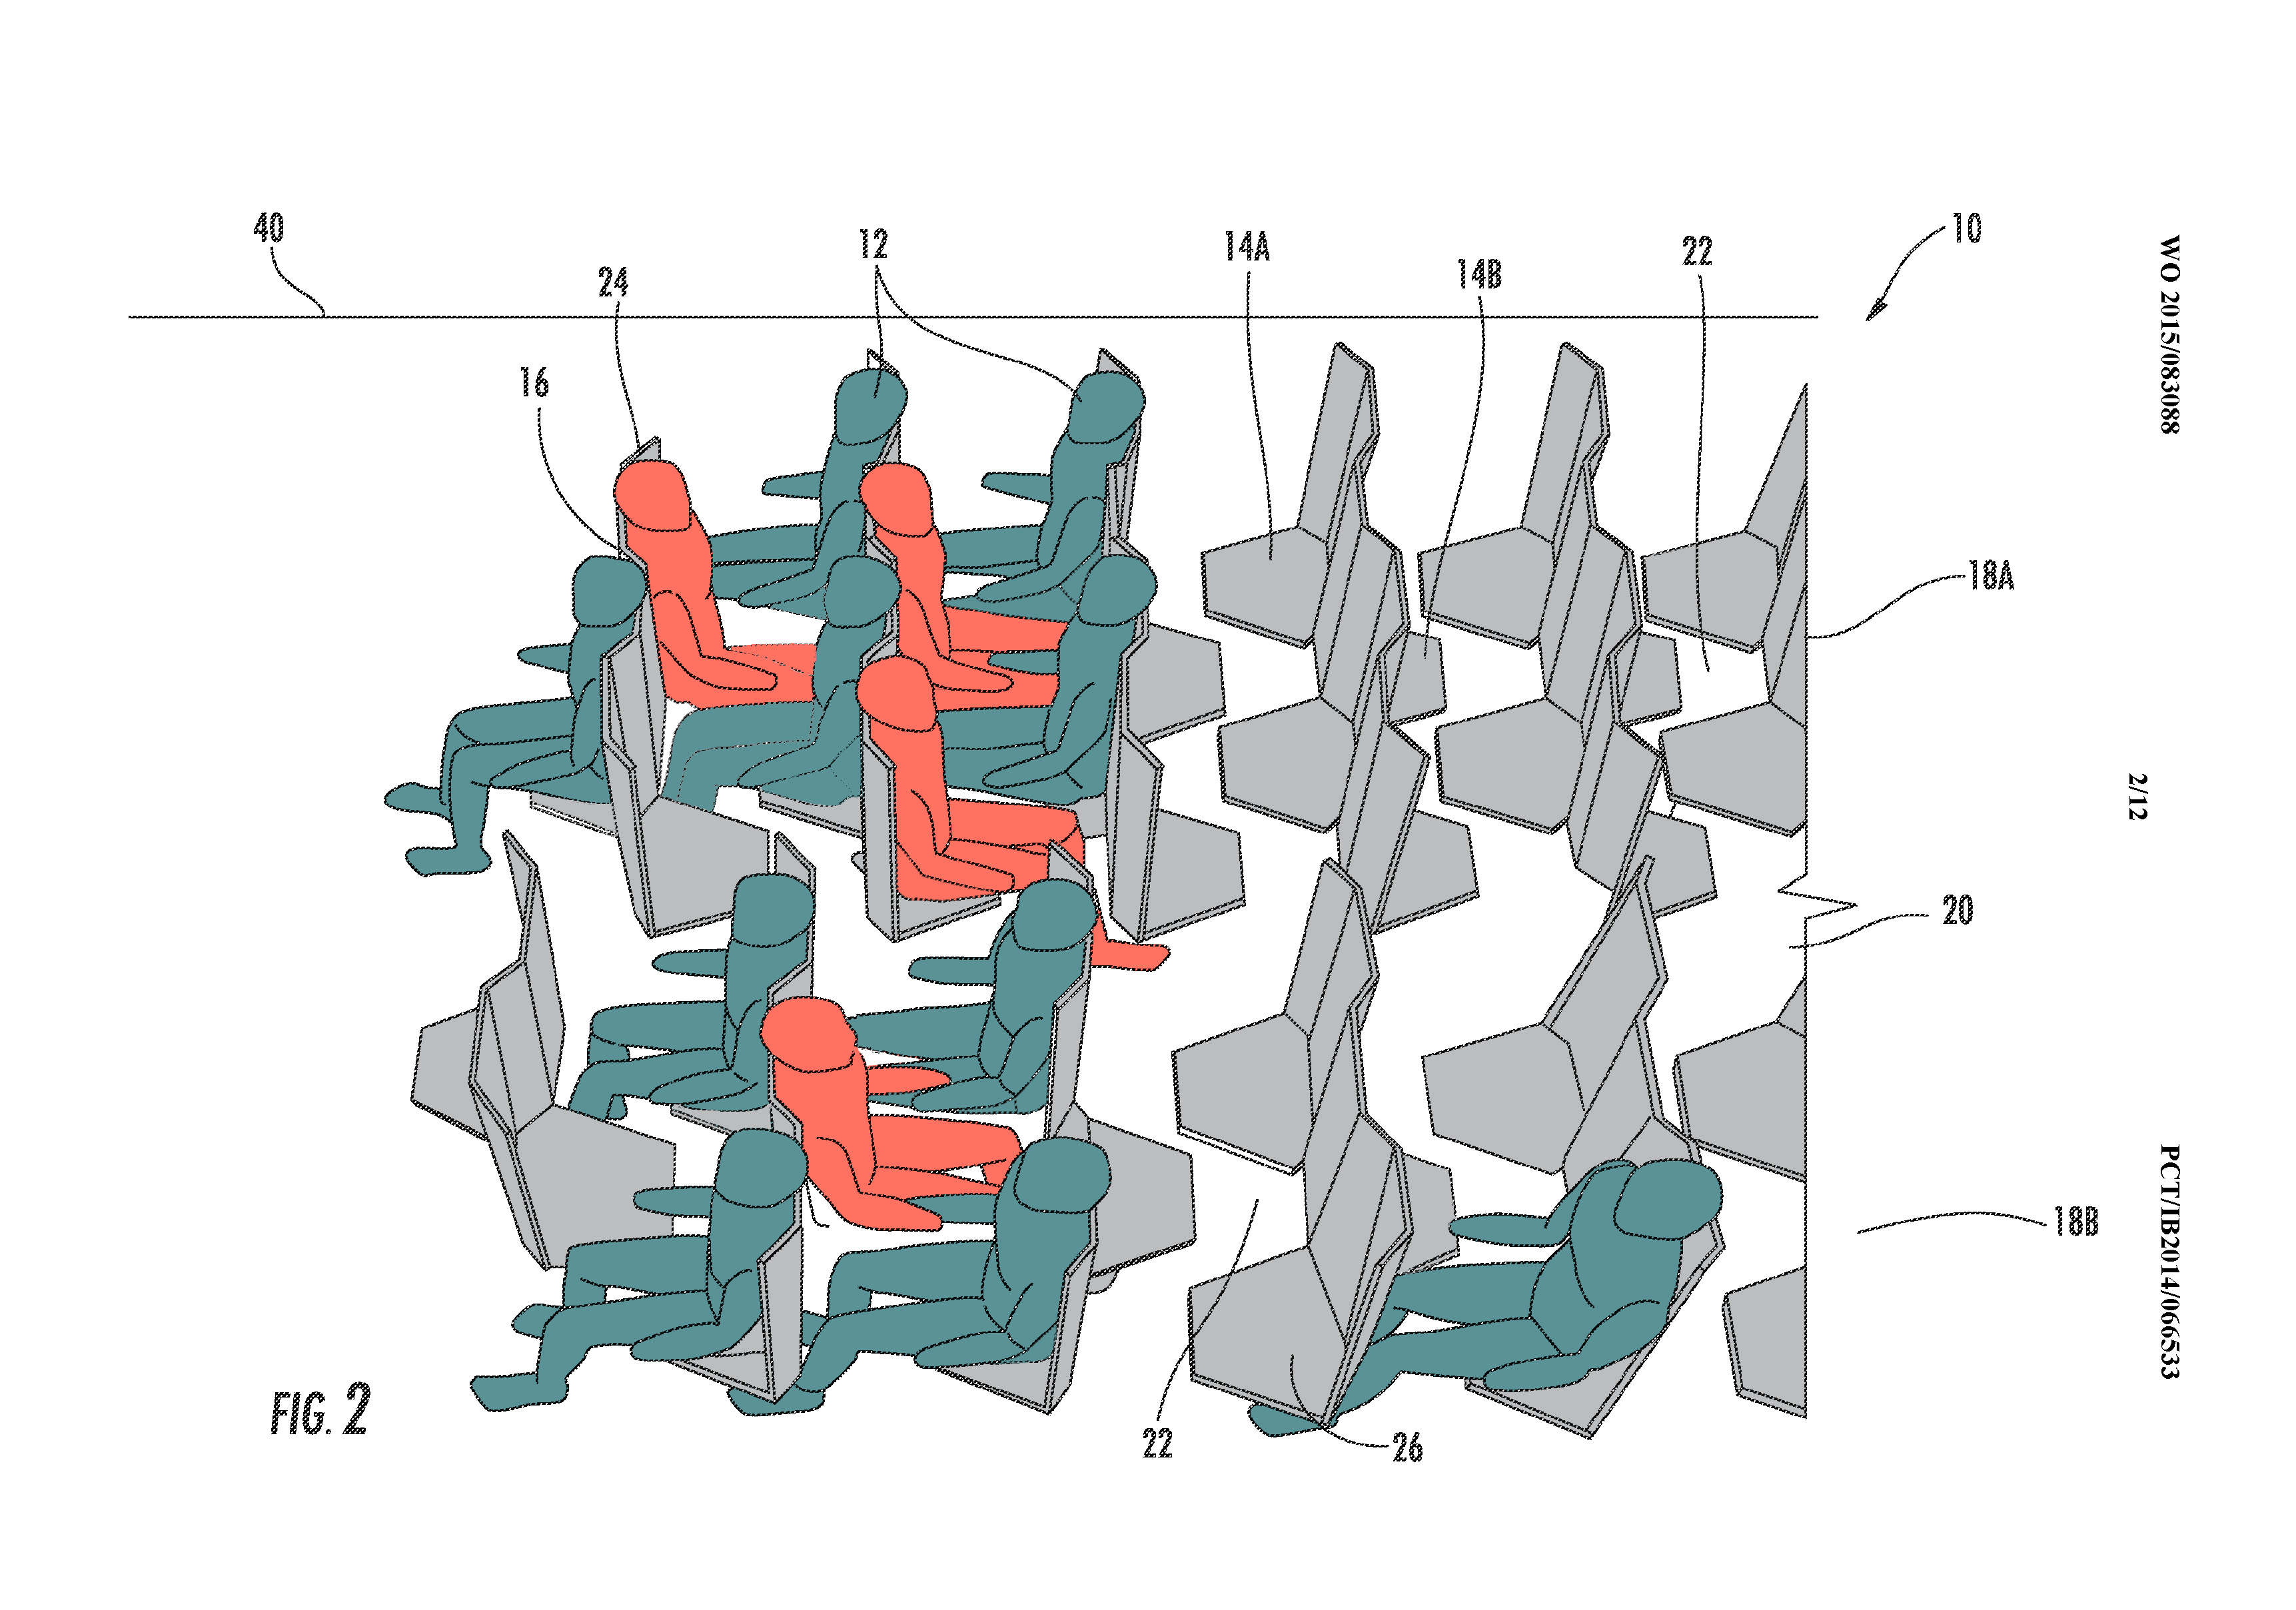 Let's all pray this idea for hellish airplane seating never becomes a reality